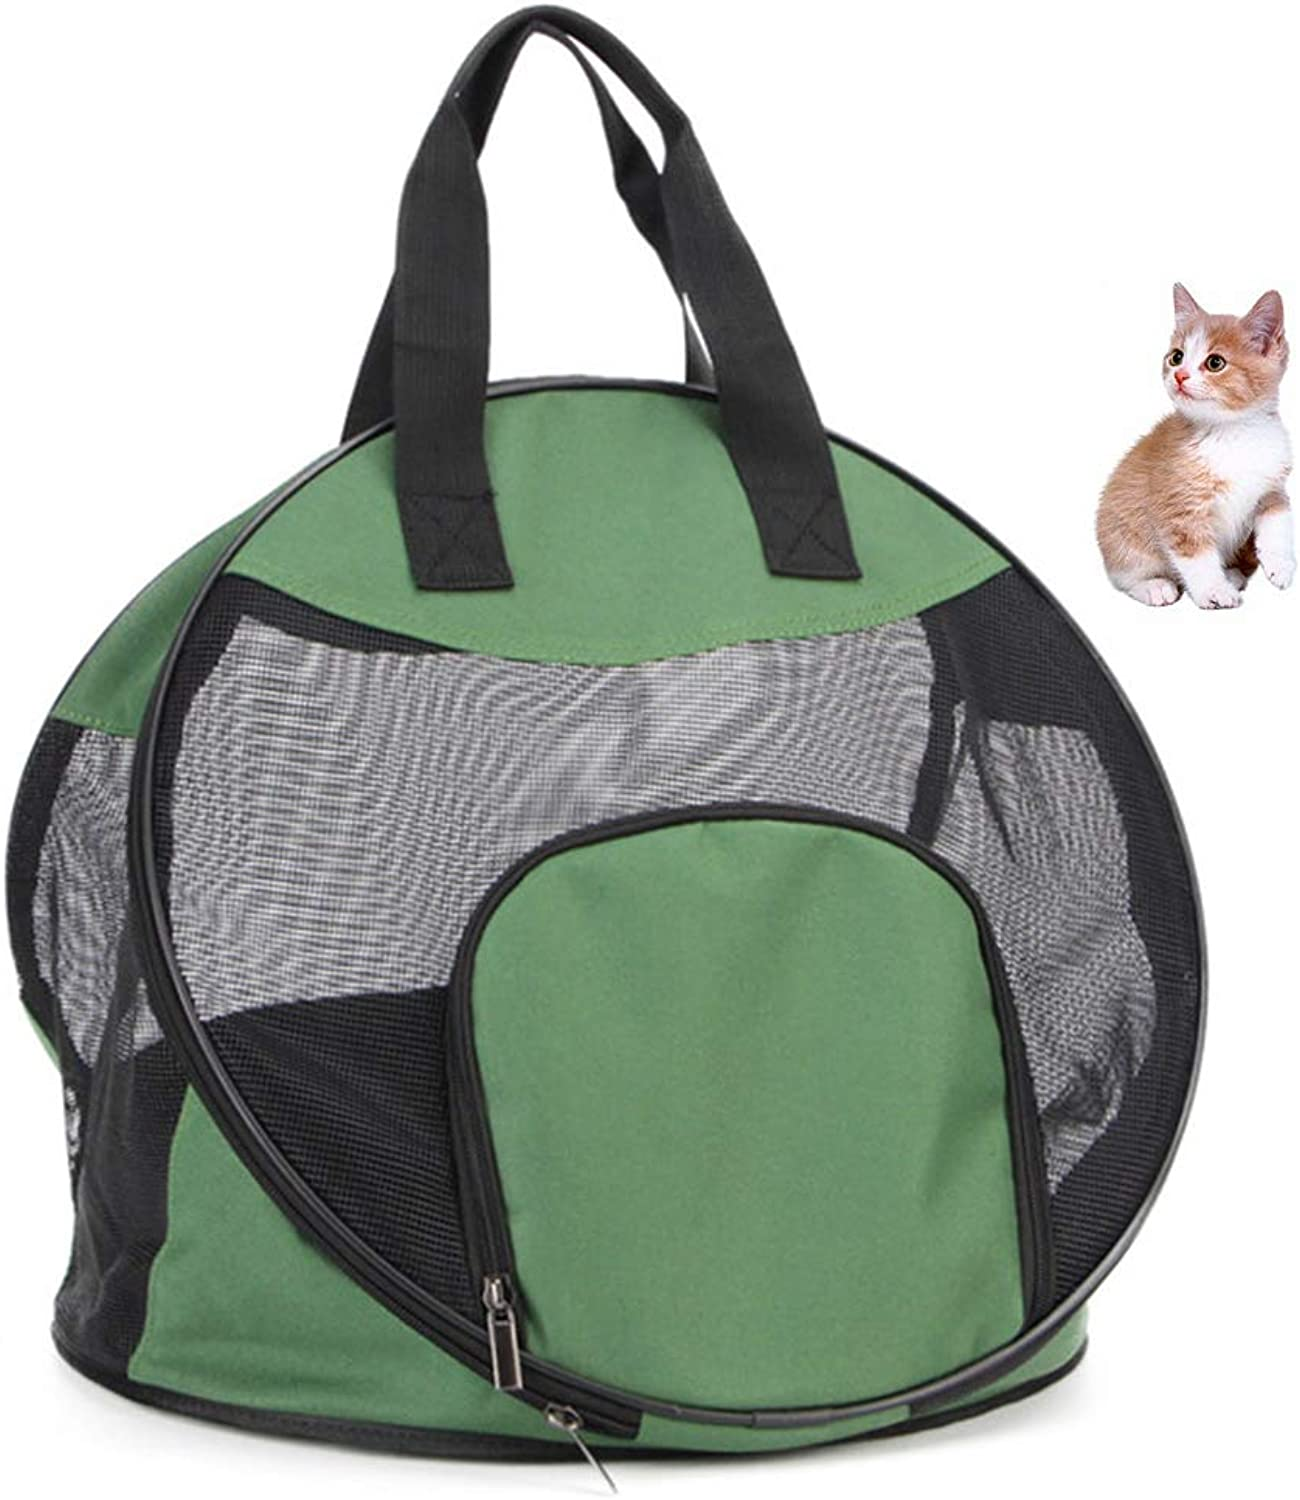 Cat Carrier,Comfortable Pet Backpack,Cat Bag Out Portable Folding Bag Cat Dog Bag Dog Travel Bag for Small Cat Pet Product Cozy Puppy Handbag